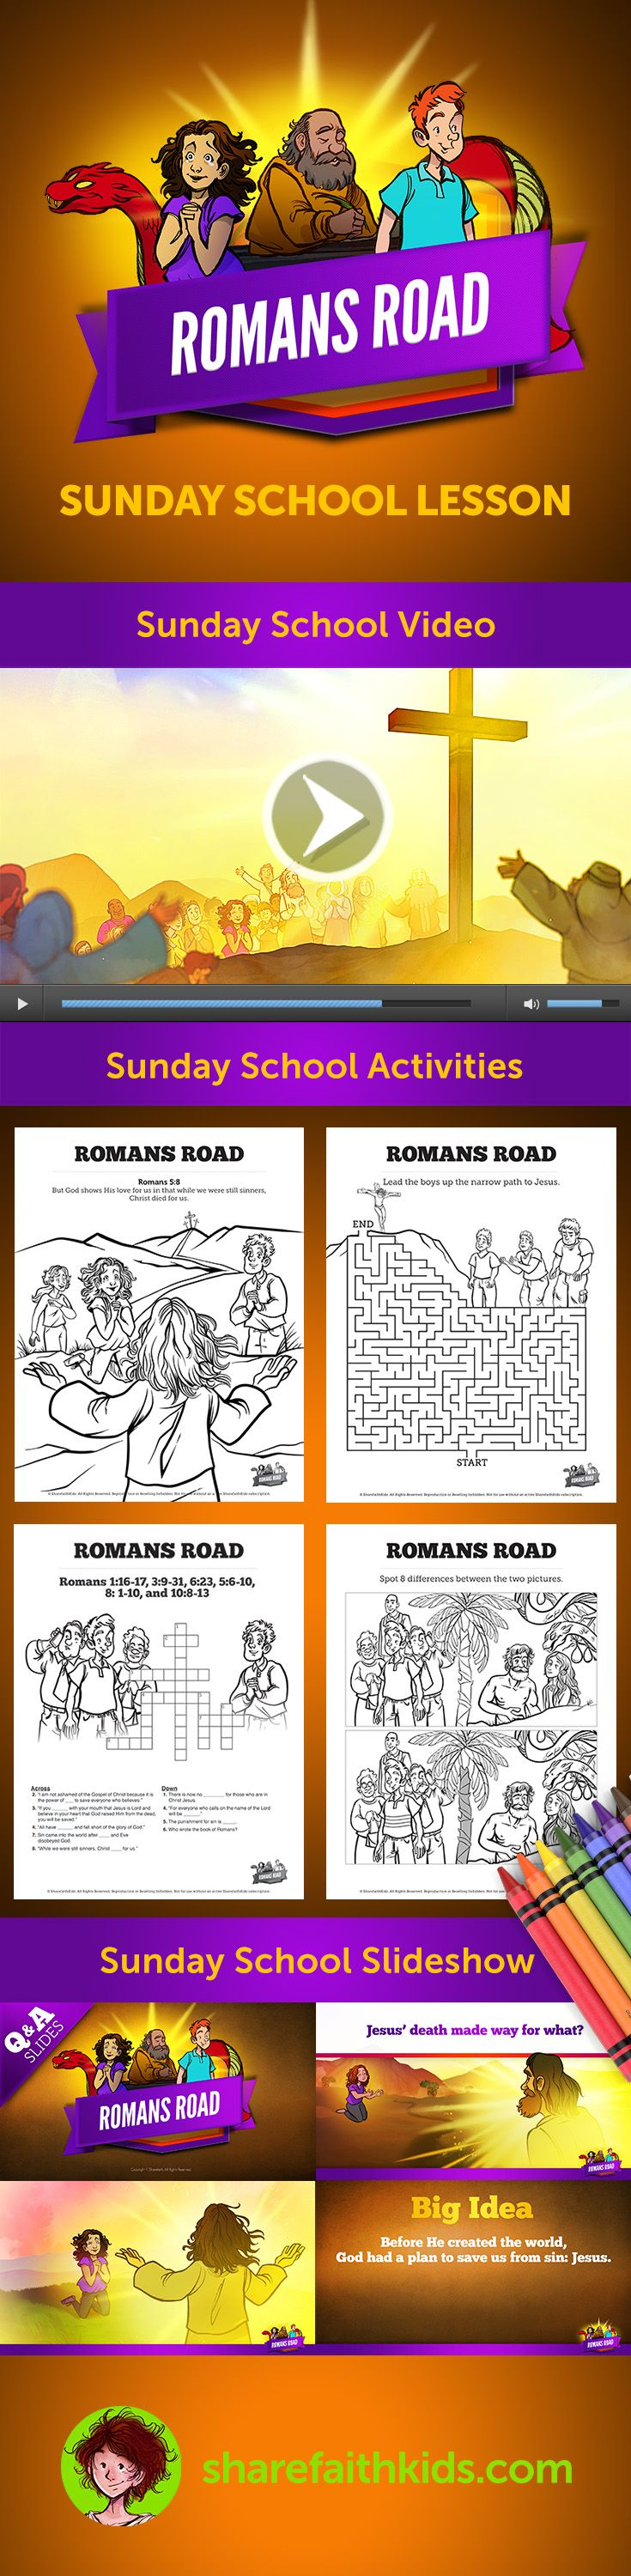 Coloring pages for preschoolers on salavation - Romans Road Book Of Romans The Romans Road Is A Wonderful Way To Explain The Good News Of Salvation Using Key Verses From The Book Of Romans